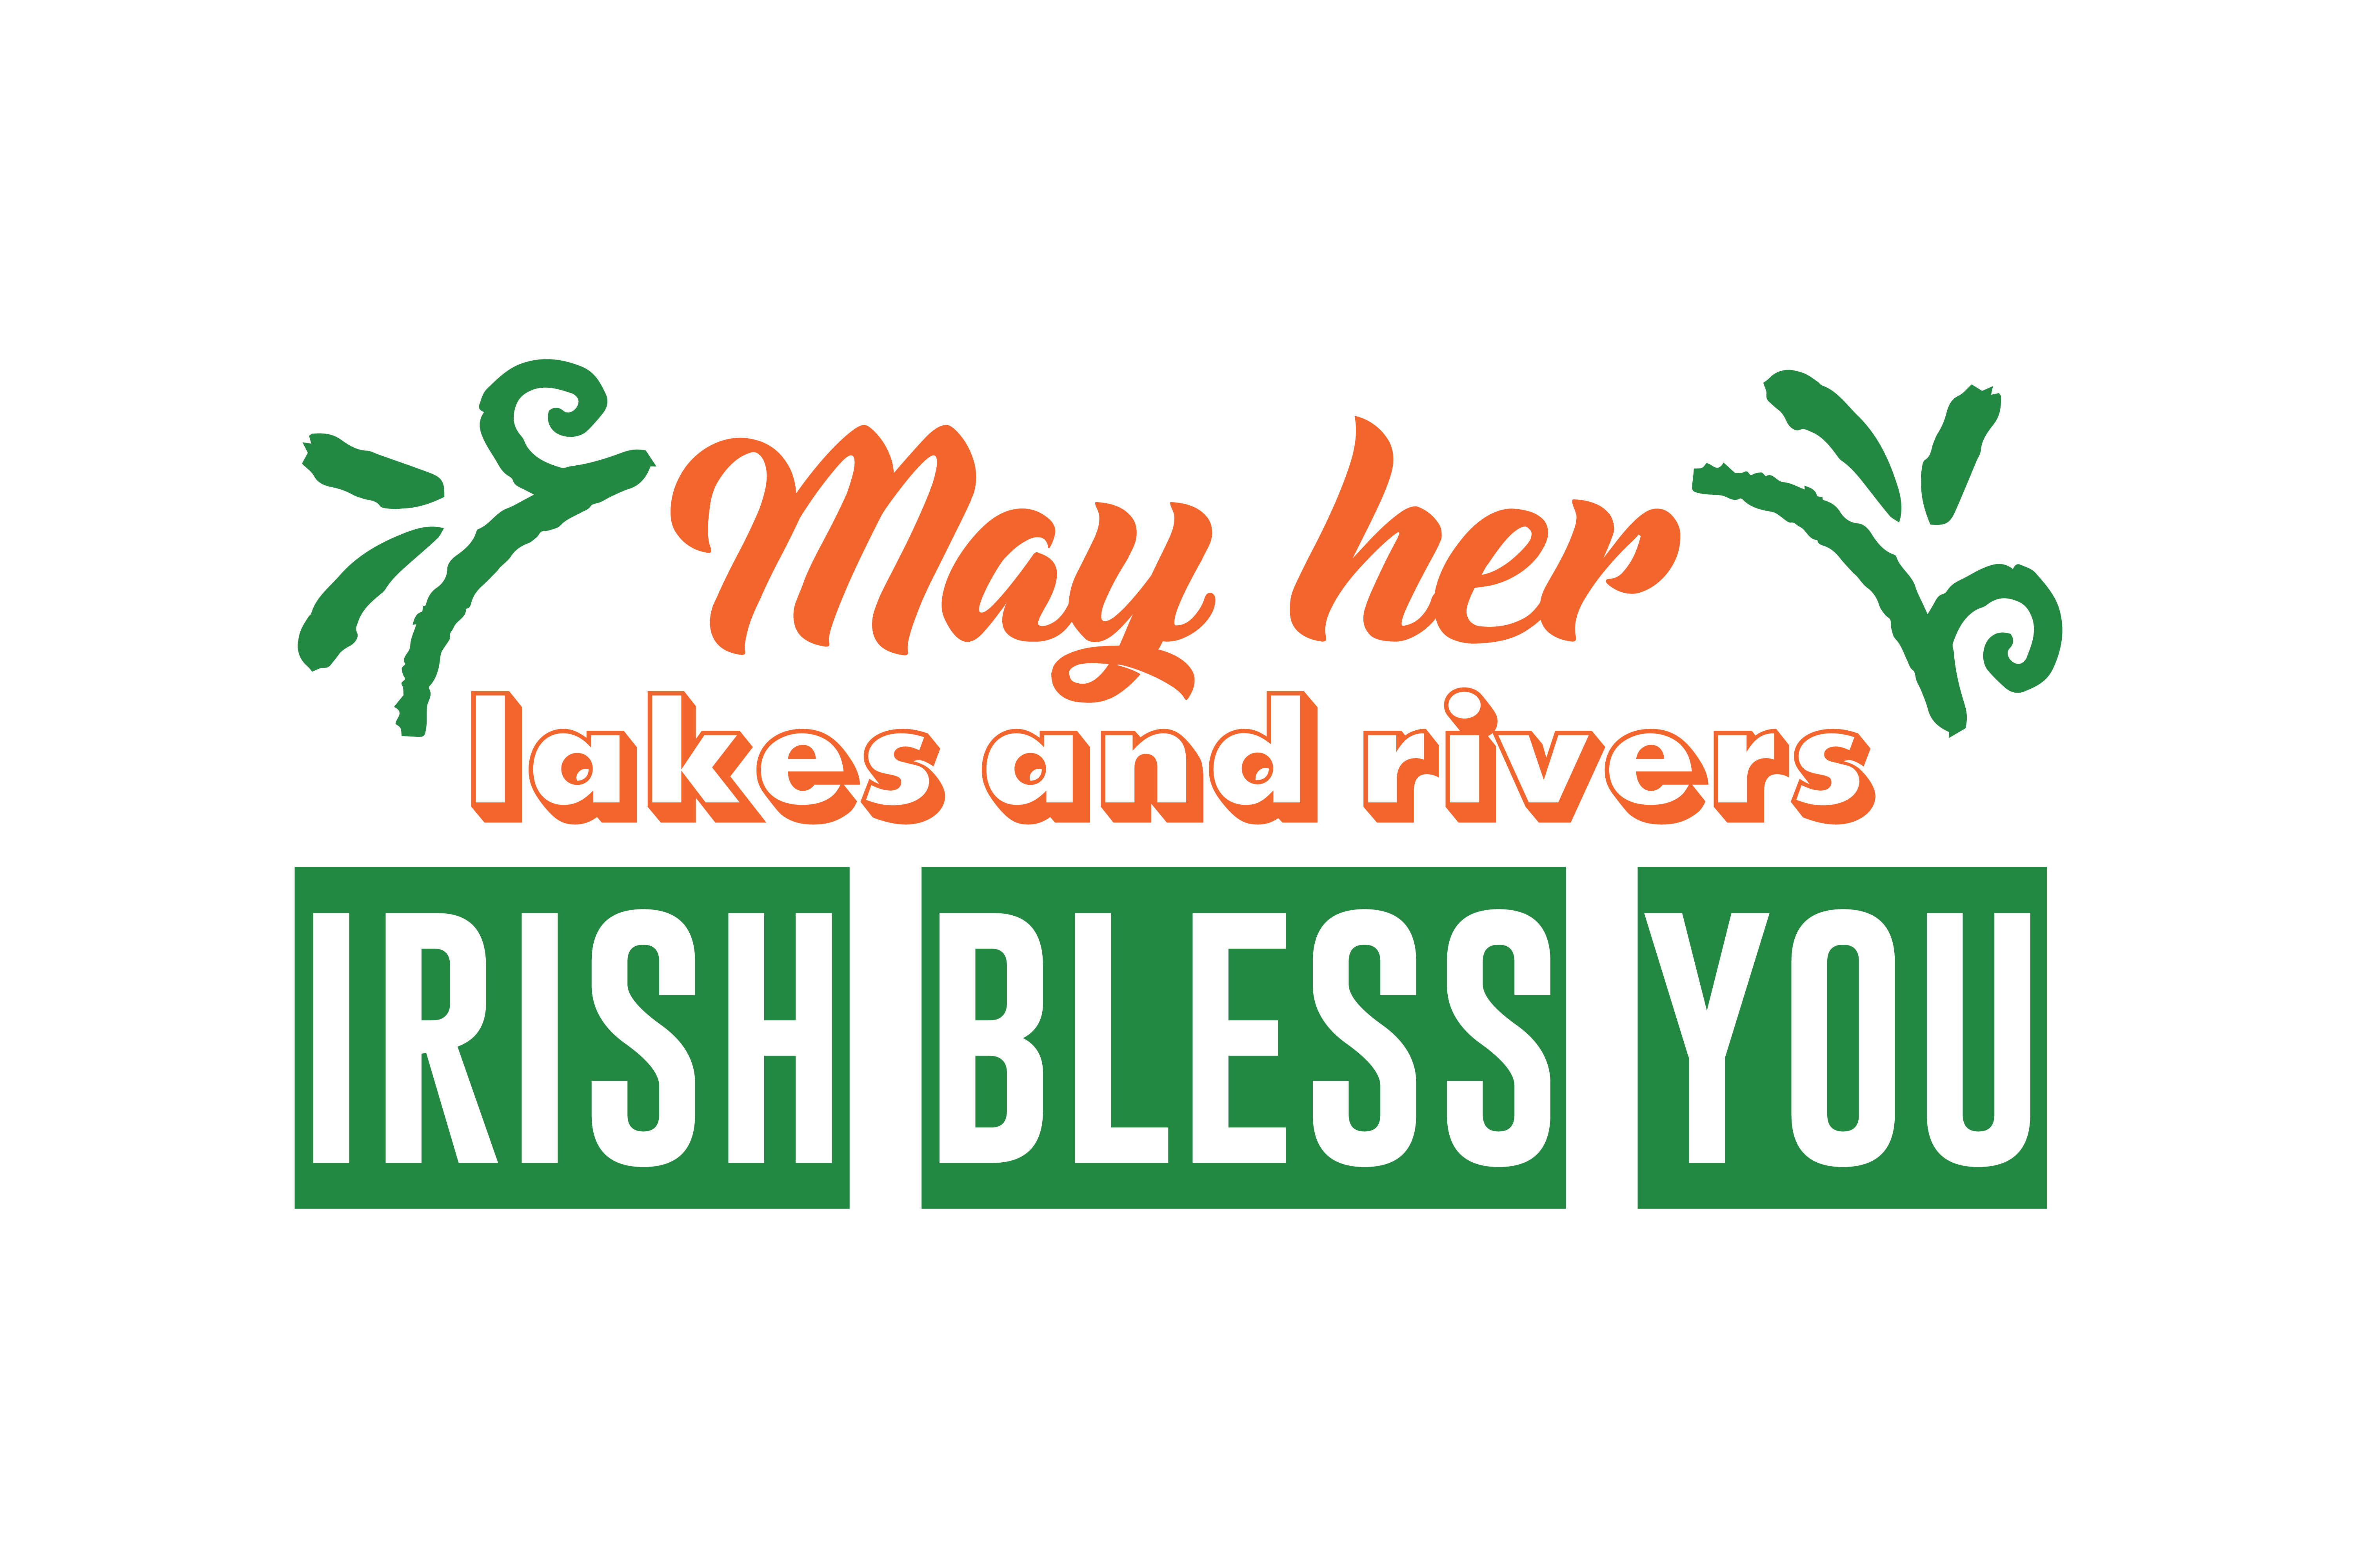 May Her Lakes And Rivers Irish Bless You Quote Svg Cut Graphic By Thelucky Creative Fabrica